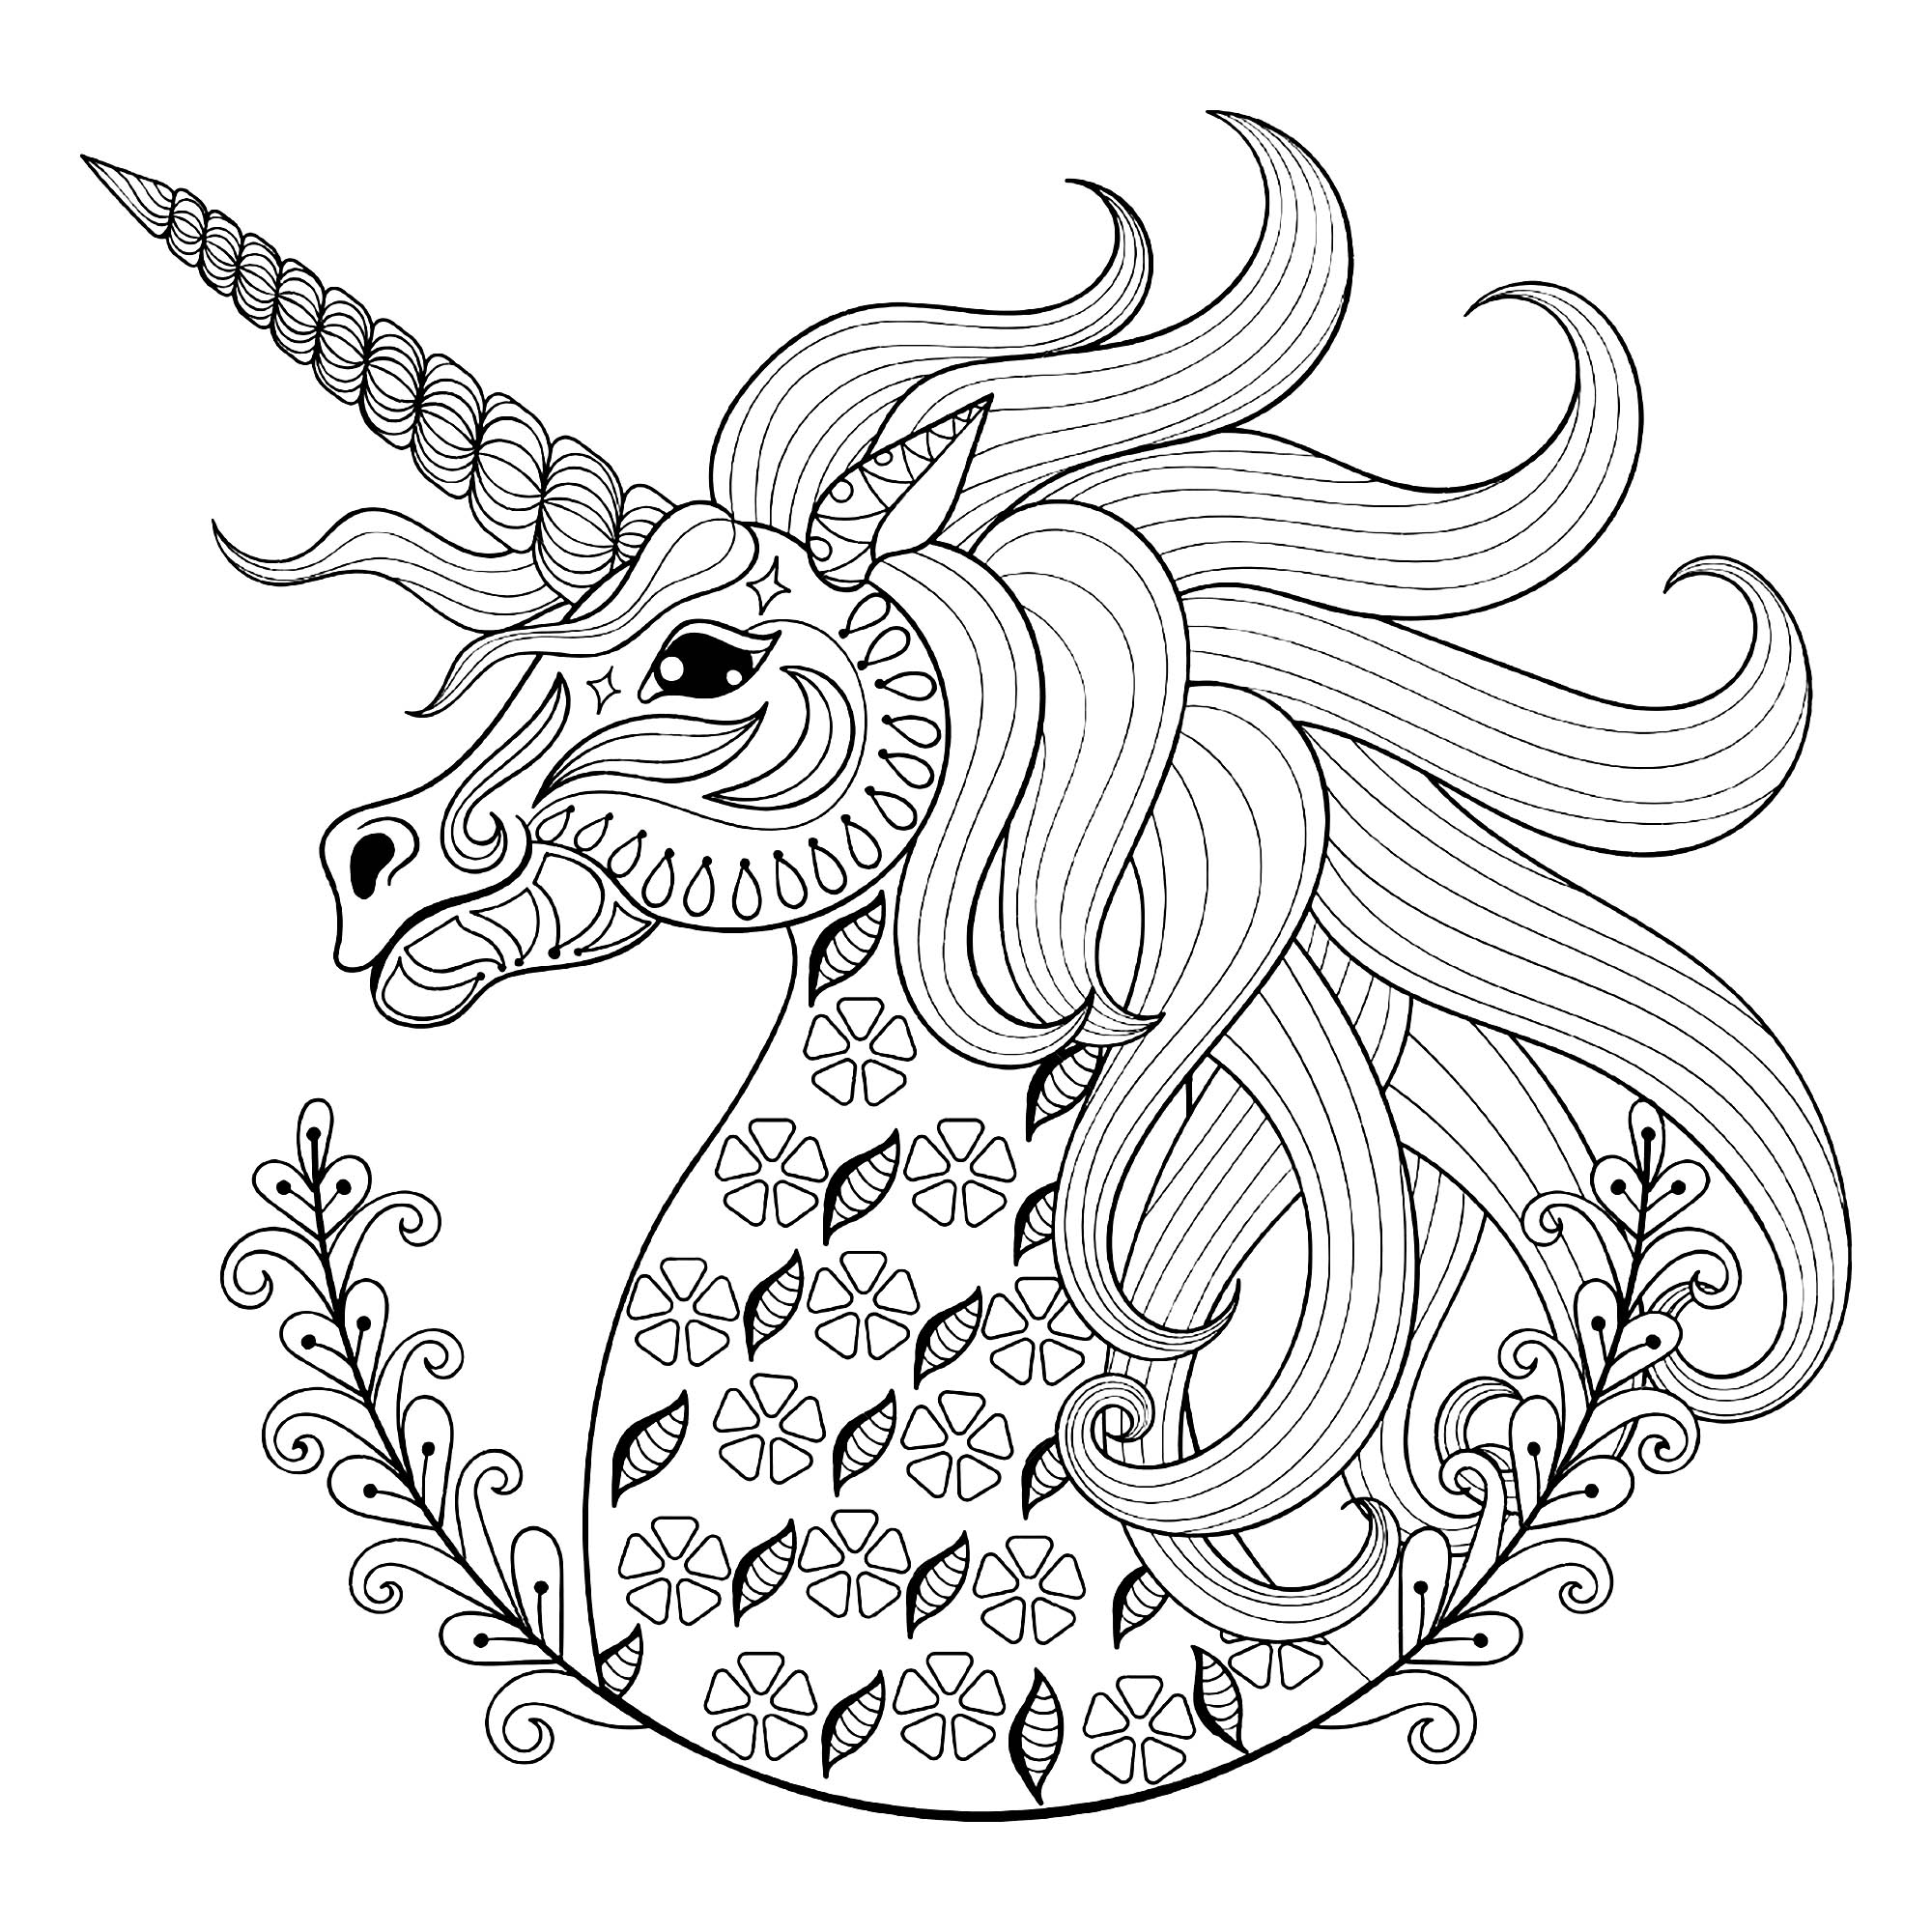 Unicorn head with patterns Unicorns Adult Coloring Pages